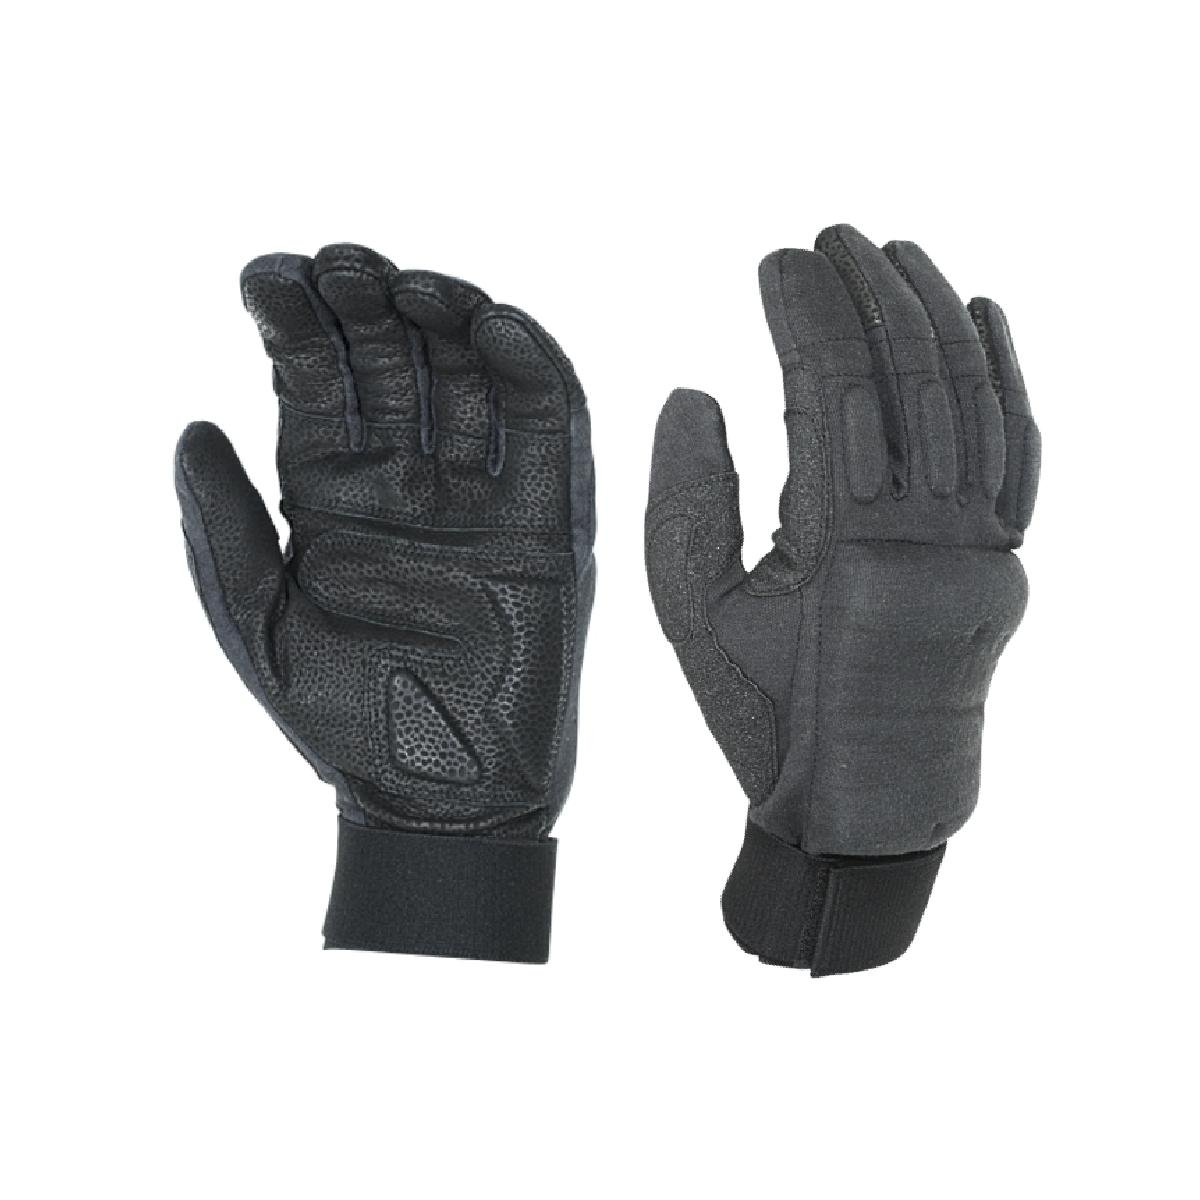 Voodoo Tactical 20-7429 Black Sniper Gloves, XX-Large